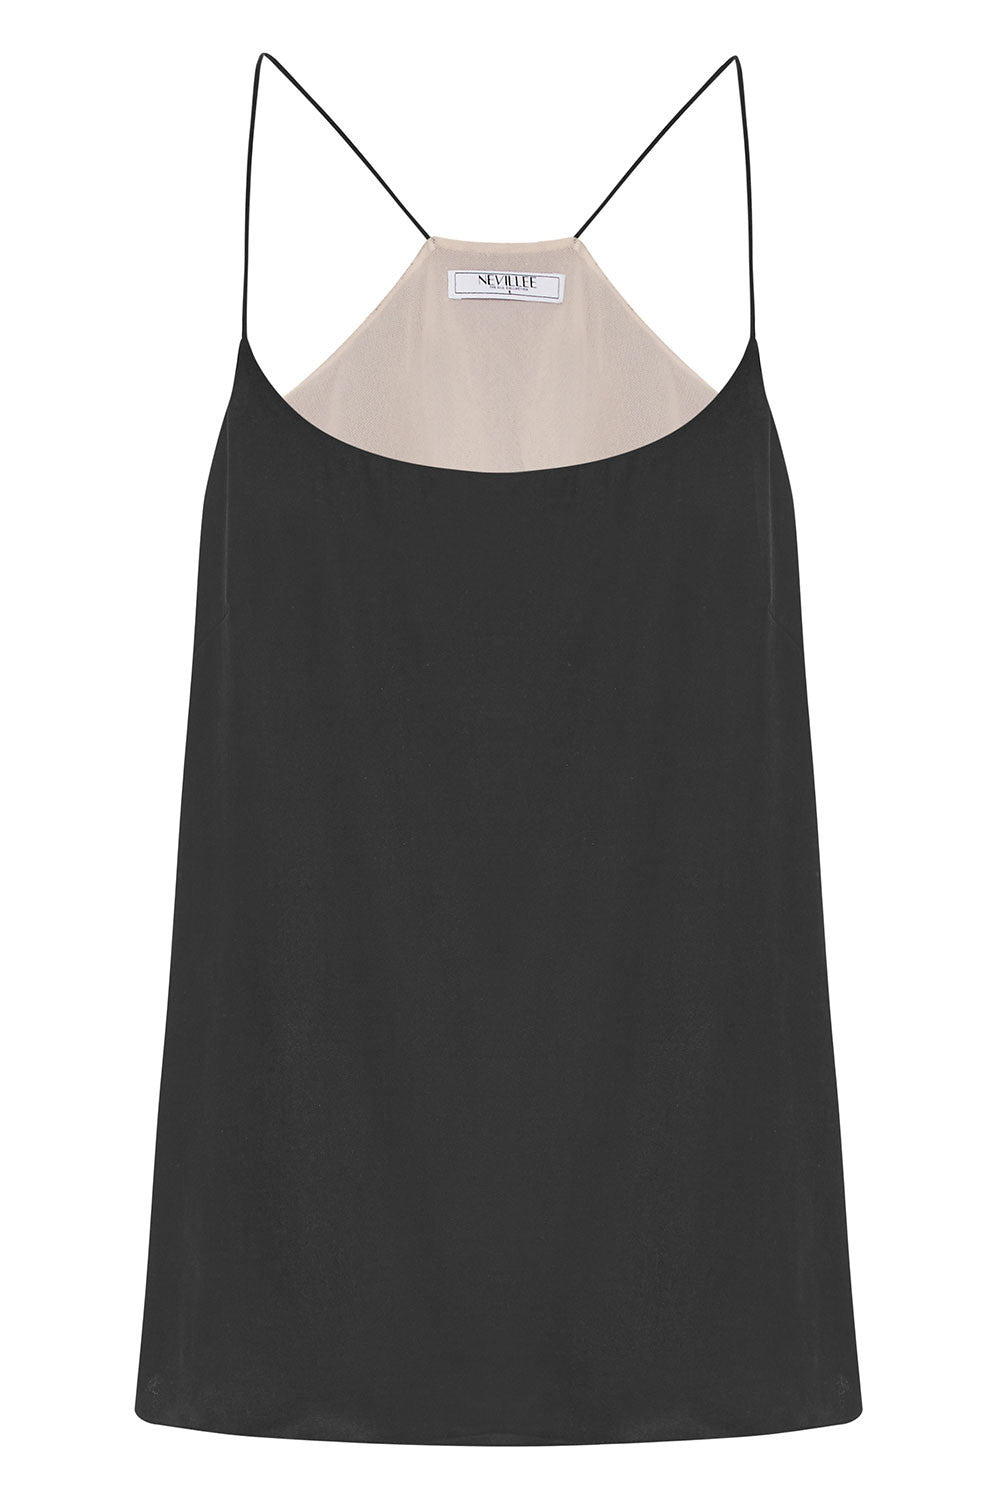 THE OFF DUTY CAMISOLE - BLACKSTONE